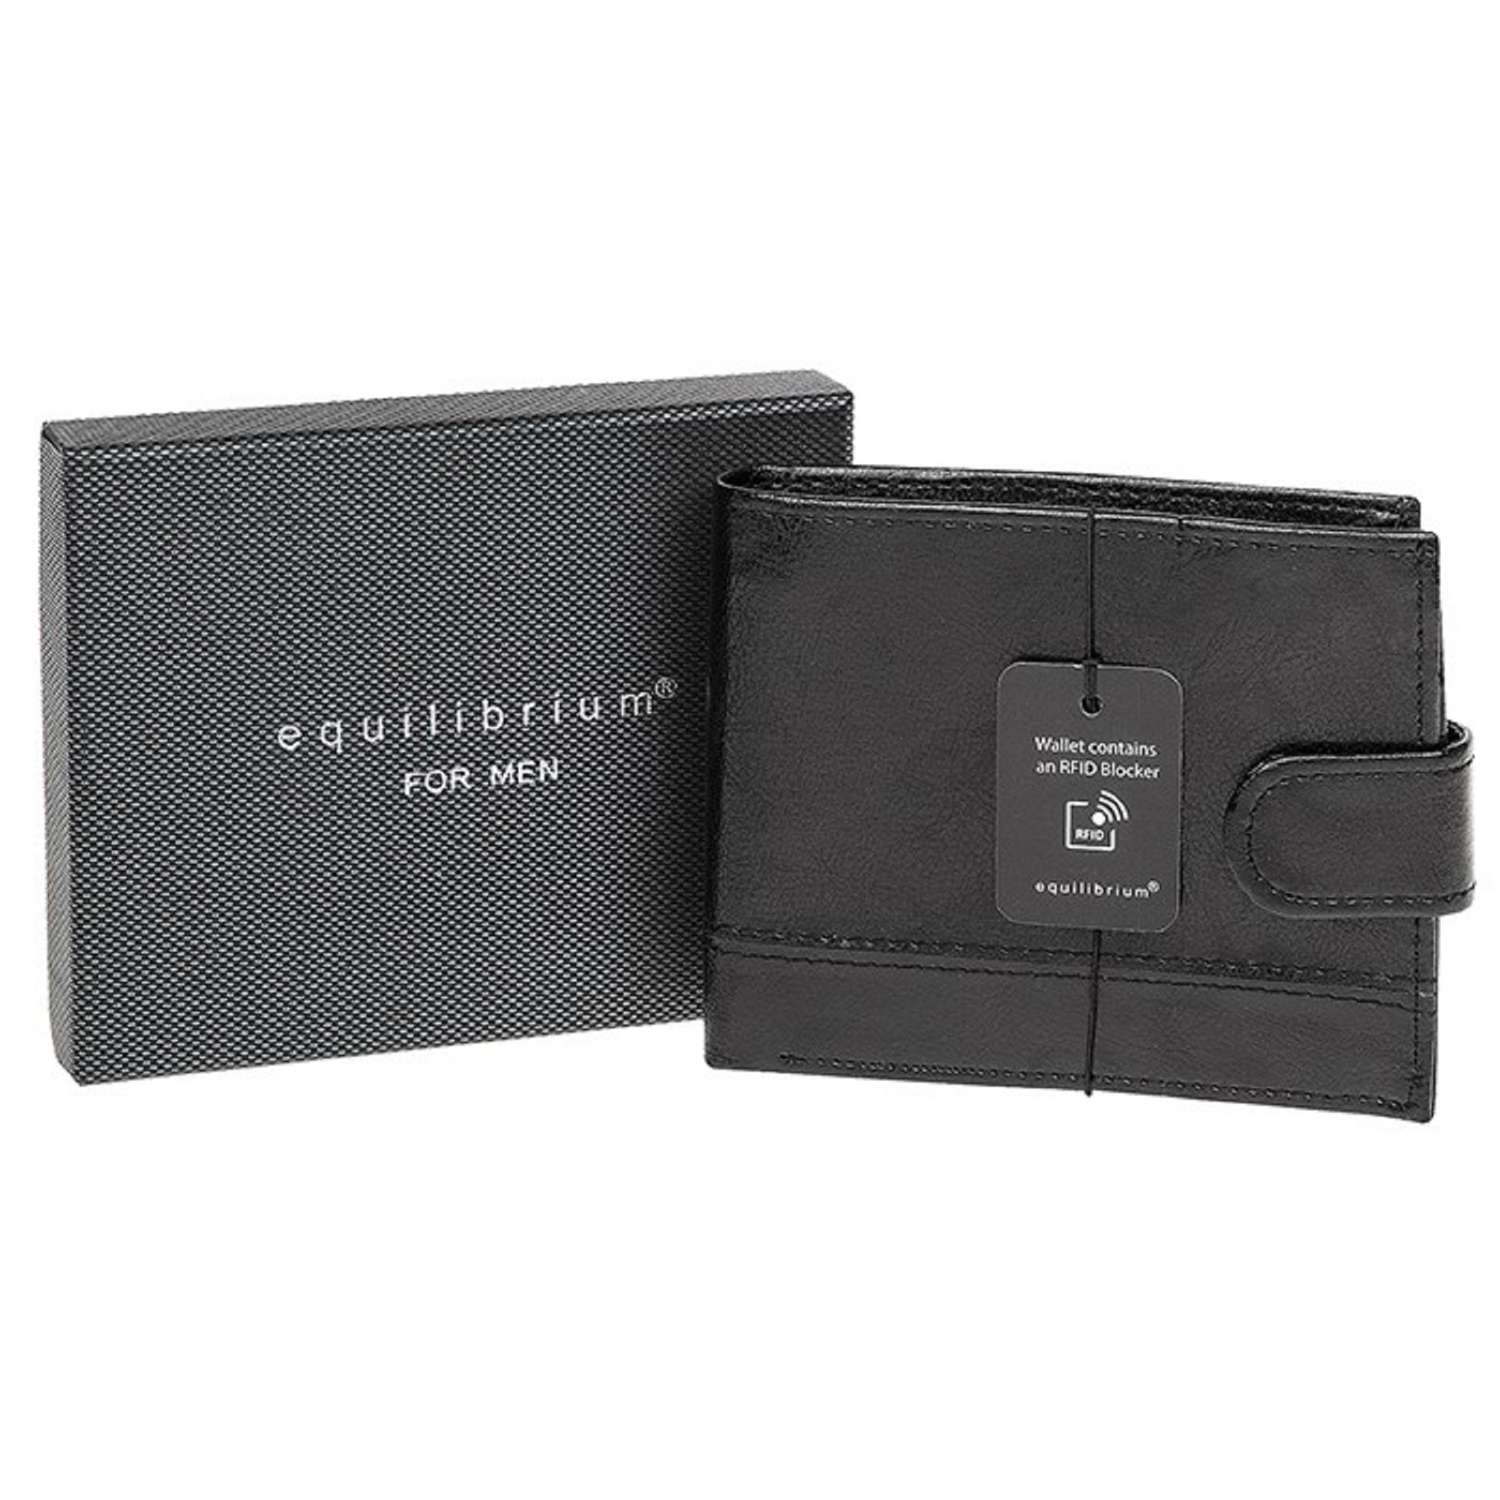 Black Wallet With RFID Blocker